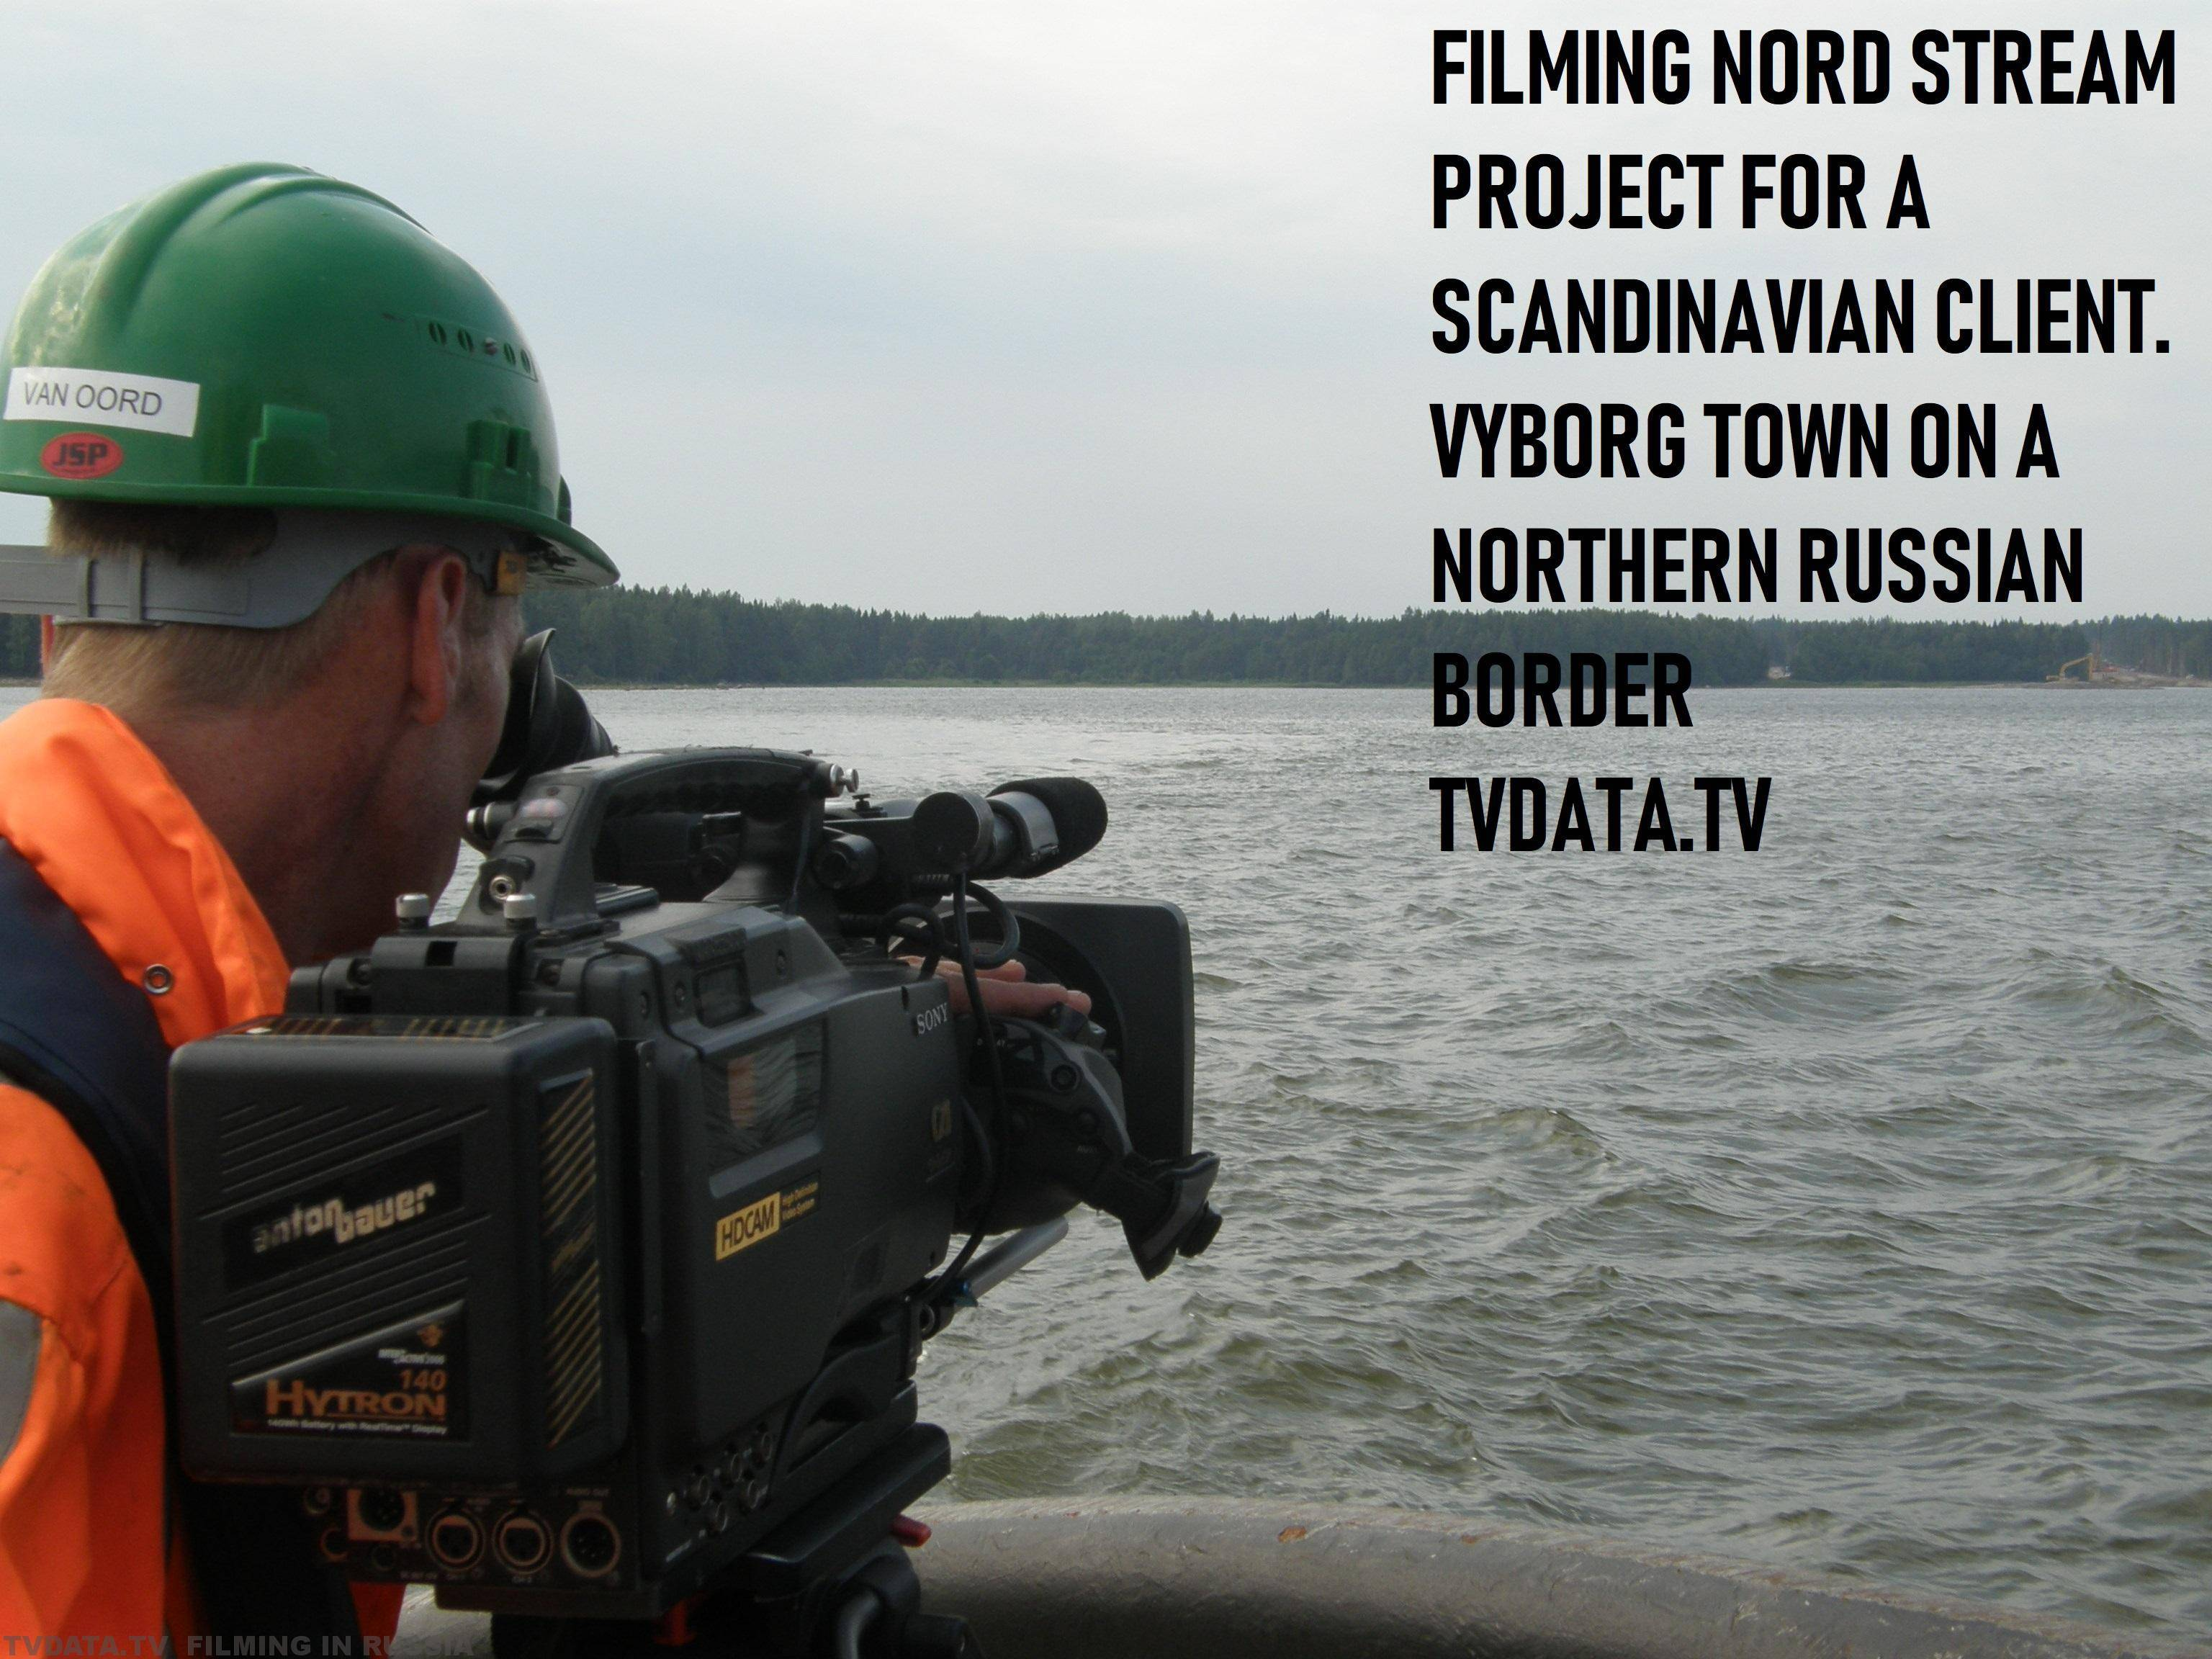 FILMING NORDSTREAM PROJECT FOR A SCANDINAVIAN CLIENT. VYBORG TOWN ON A NORTHERN RUSSIAN BORDER